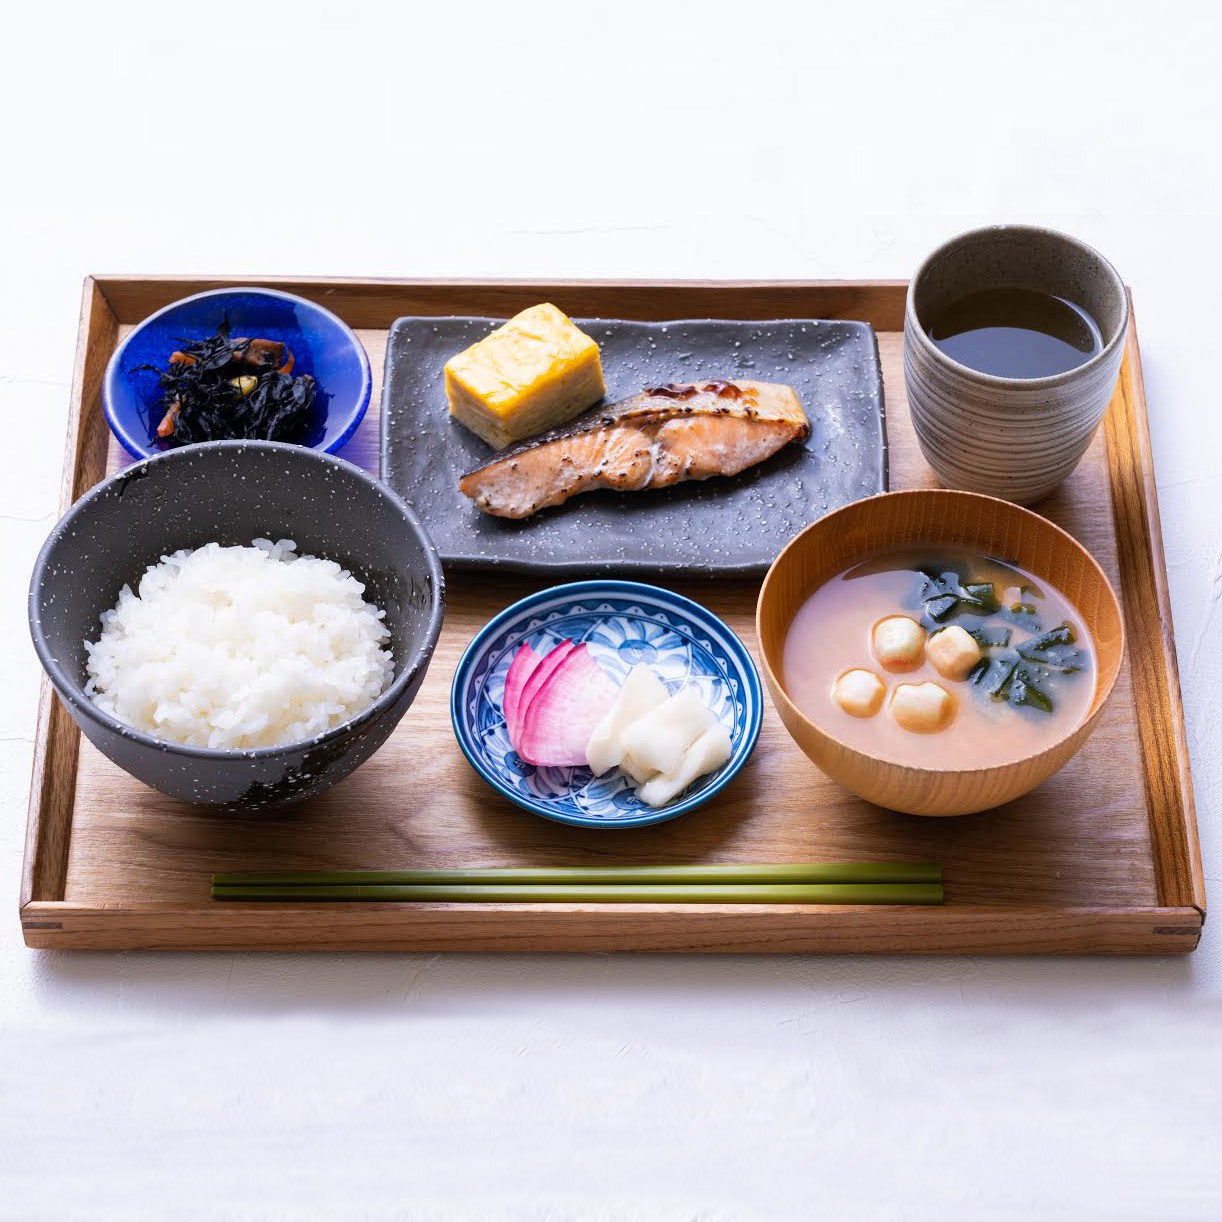 Simple Japanese Breakfast Upon Request